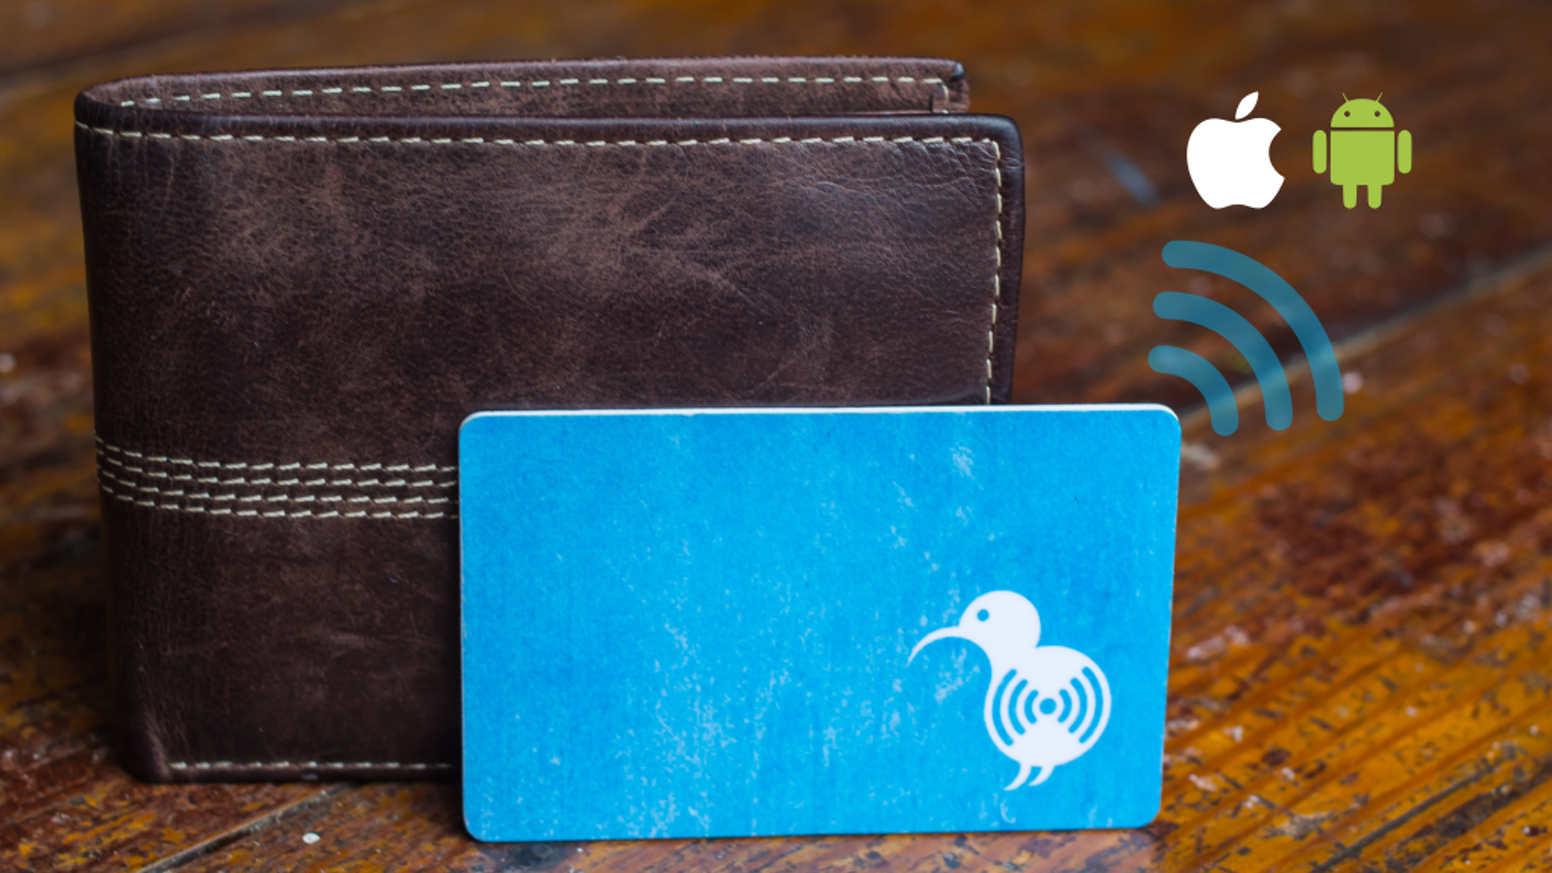 Bluetooth tracker. World's thinnest. Waterproof. 3 year battery life. Make your wallet a smart wallet. Fully funded! Pre-order on Indiegogo!